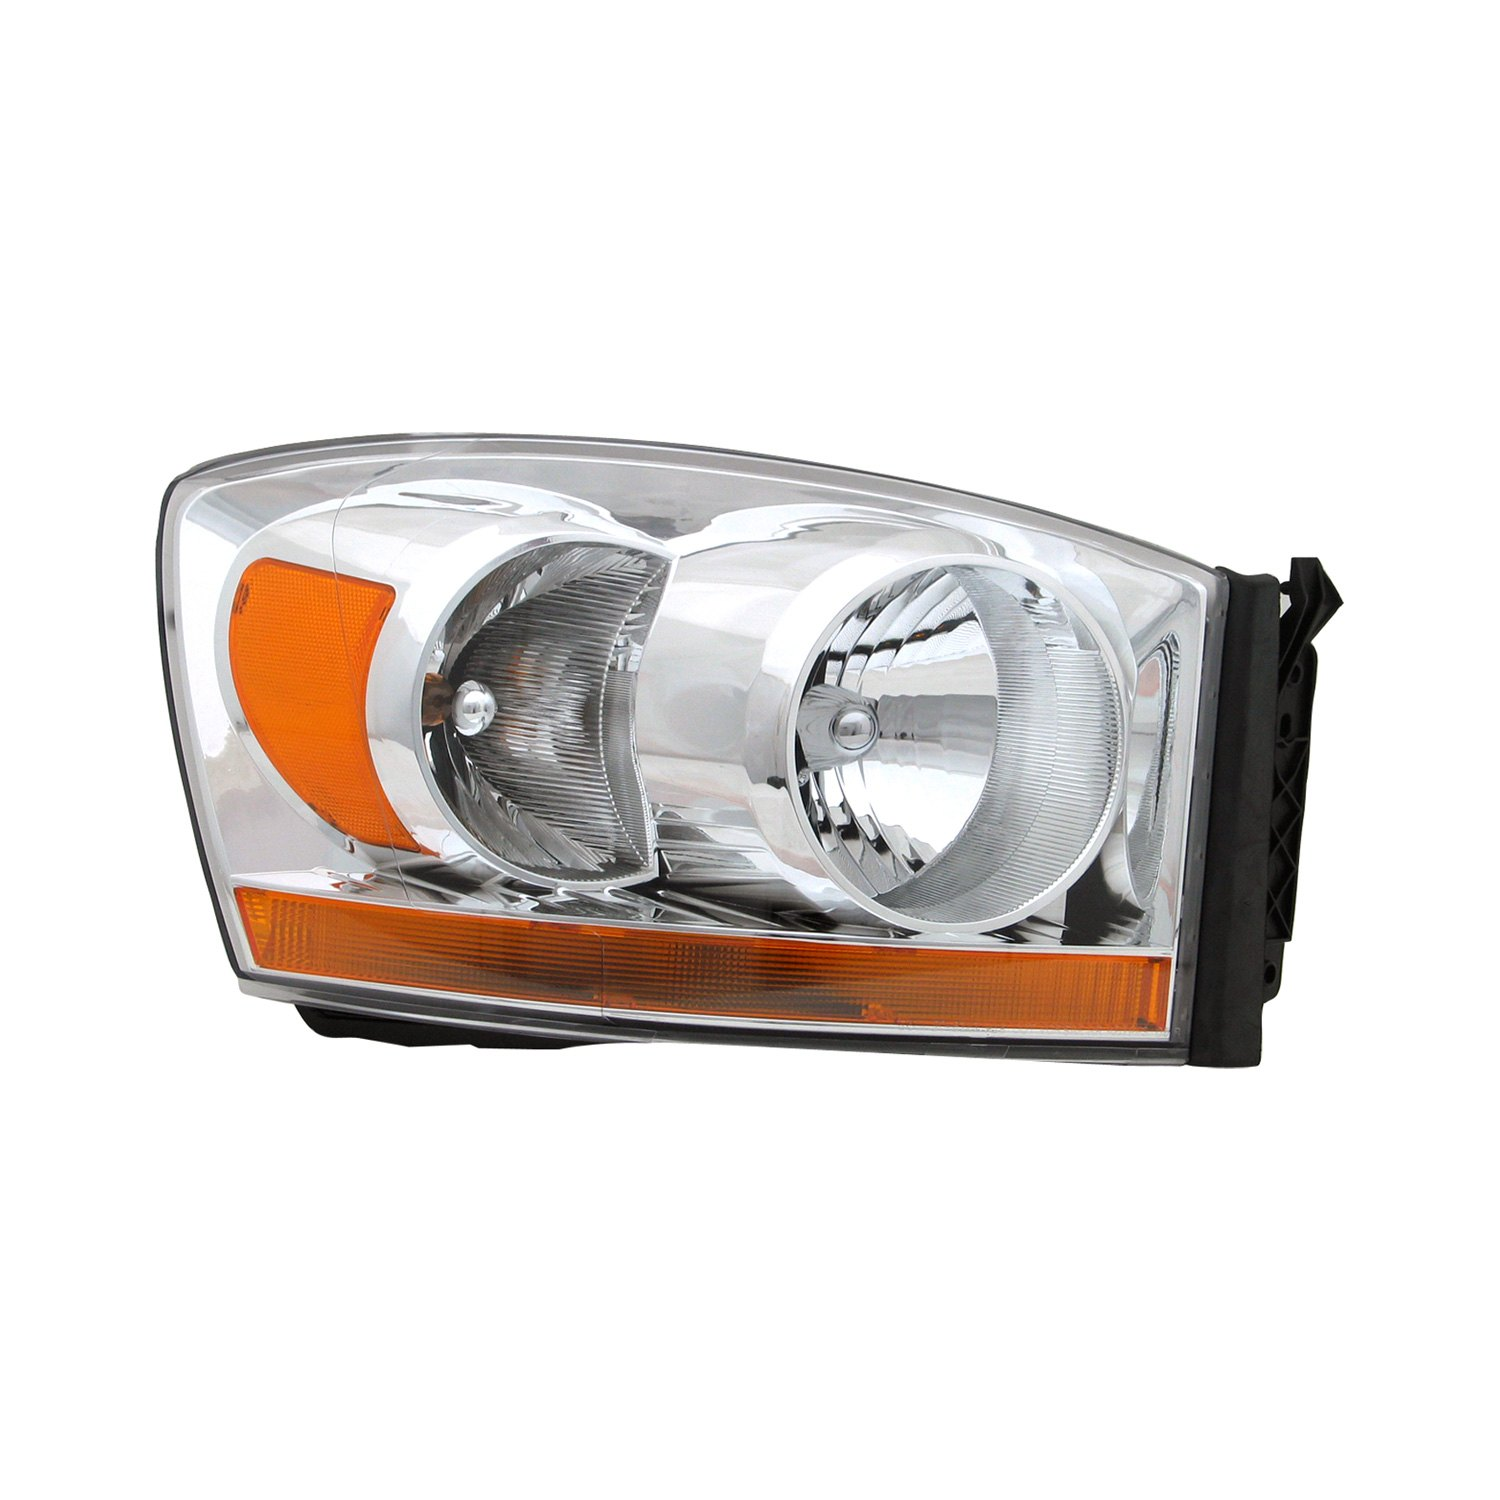 Dodge Replacement Headlights: Dodge Ram 2006 Replacement Headlight Lens And